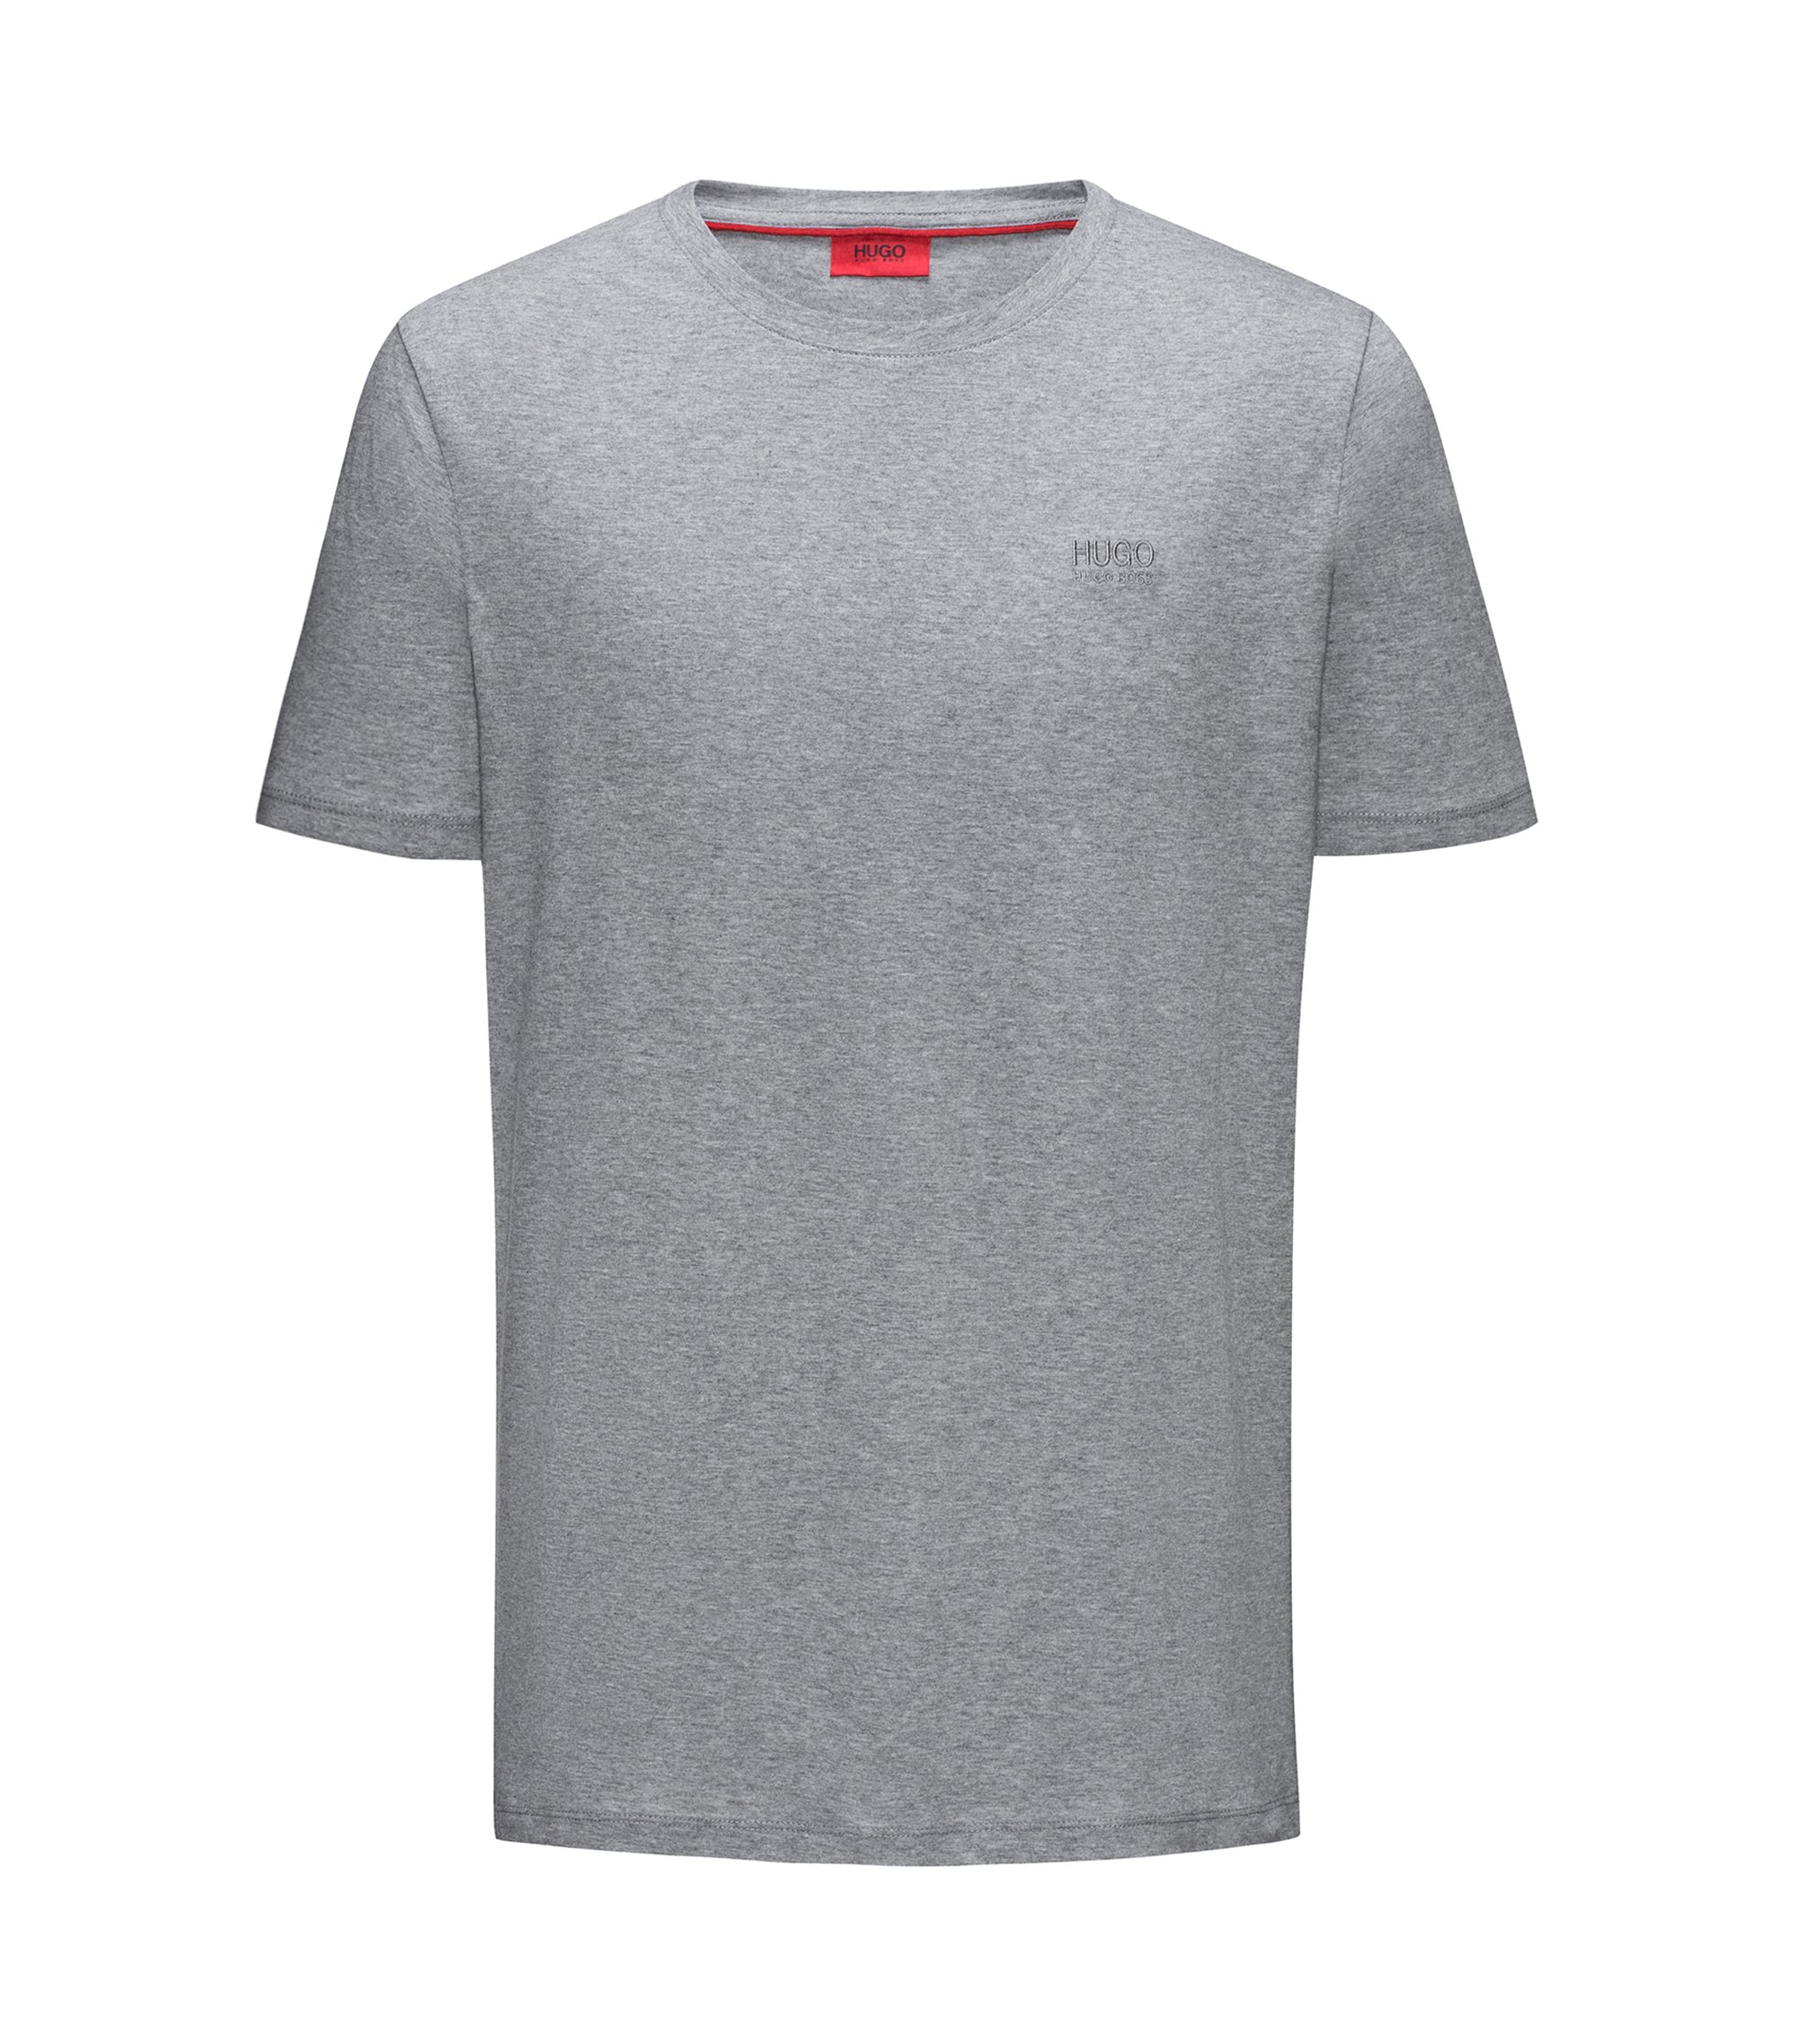 T-shirt Regular Fit en coton doux avec logo, Gris